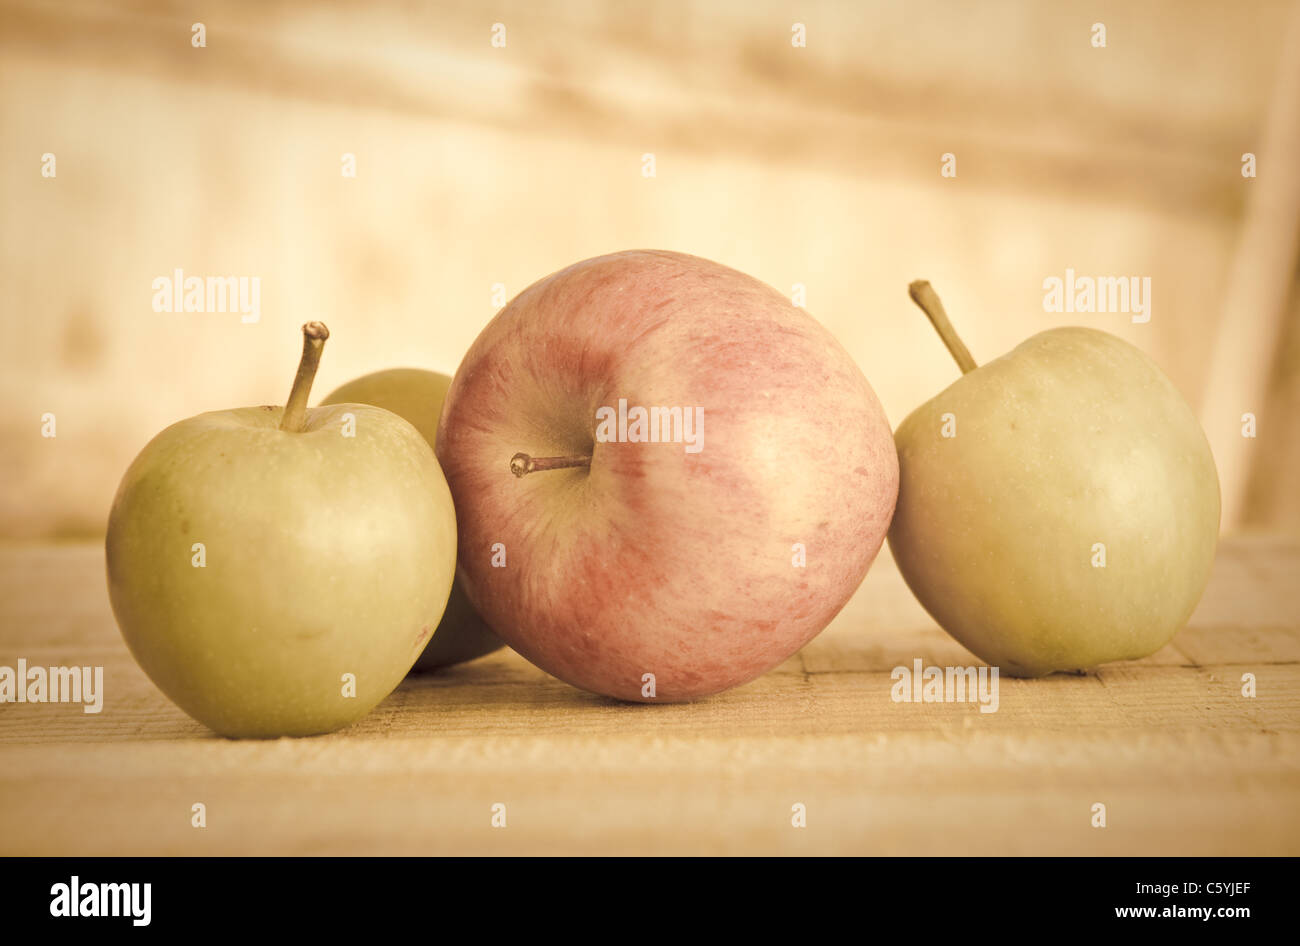 Low contrast still life image of apples - Stock Image